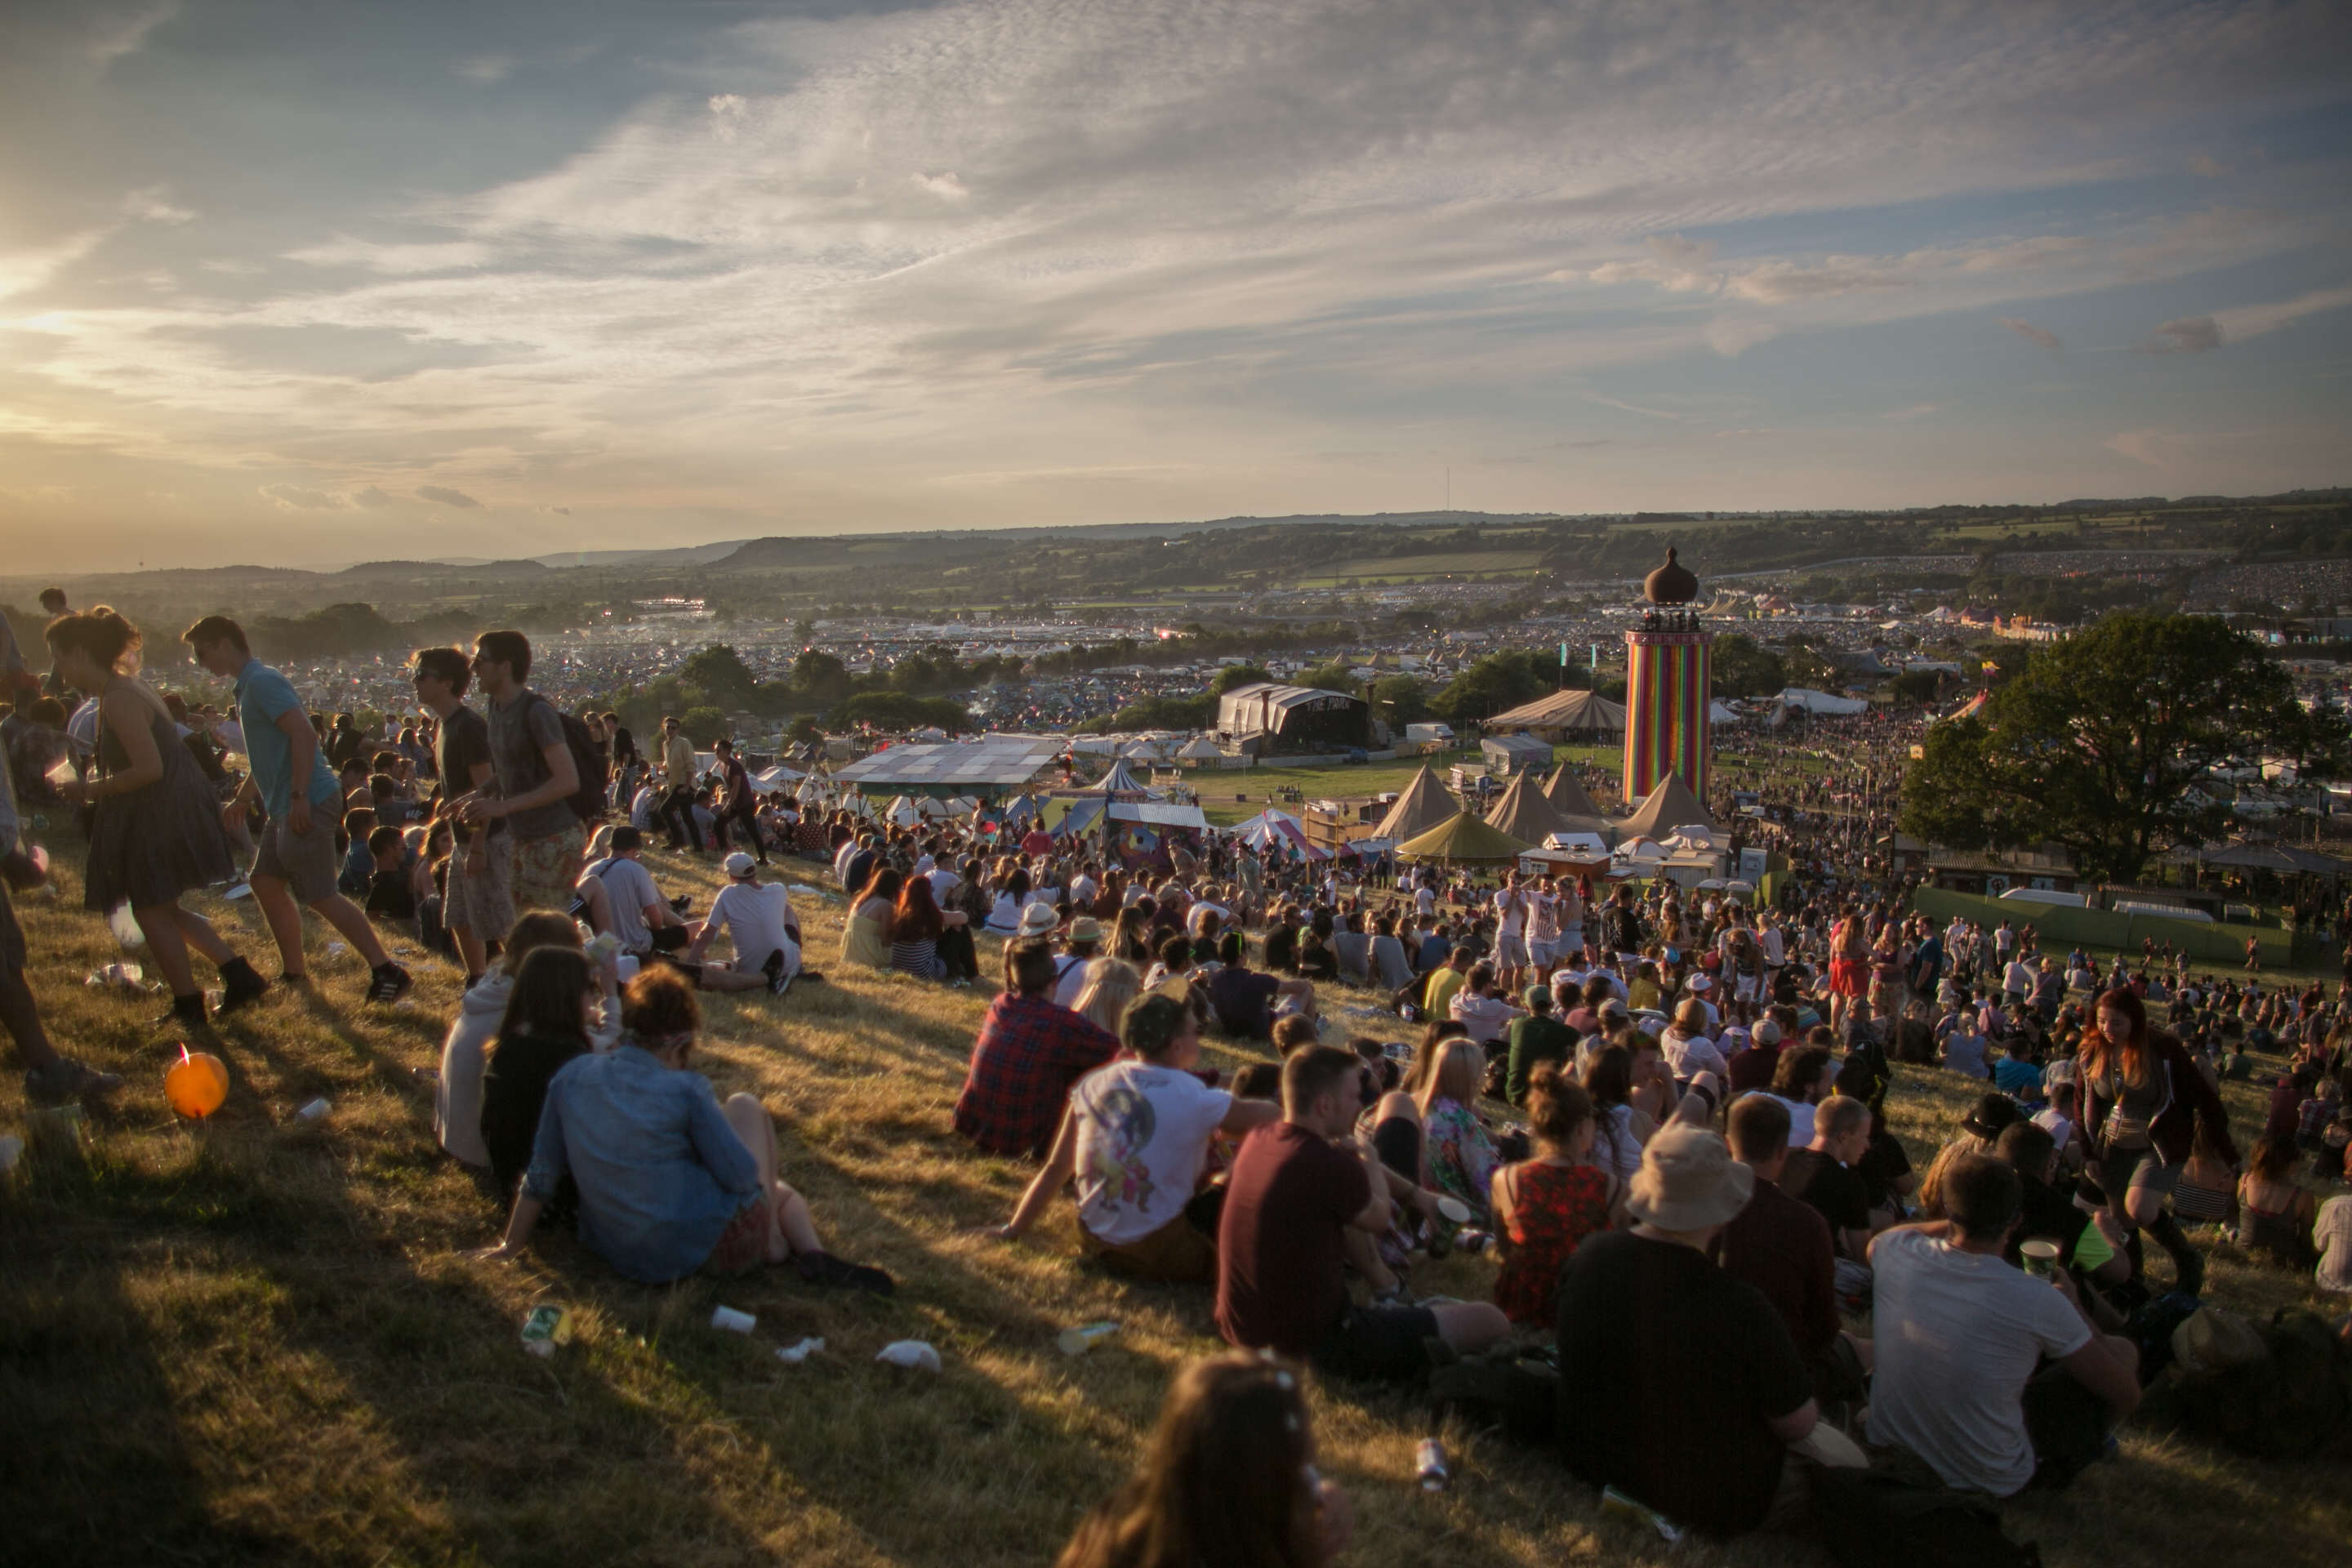 glastonbury1 Man Dies After Catching Fire At Glastonbury